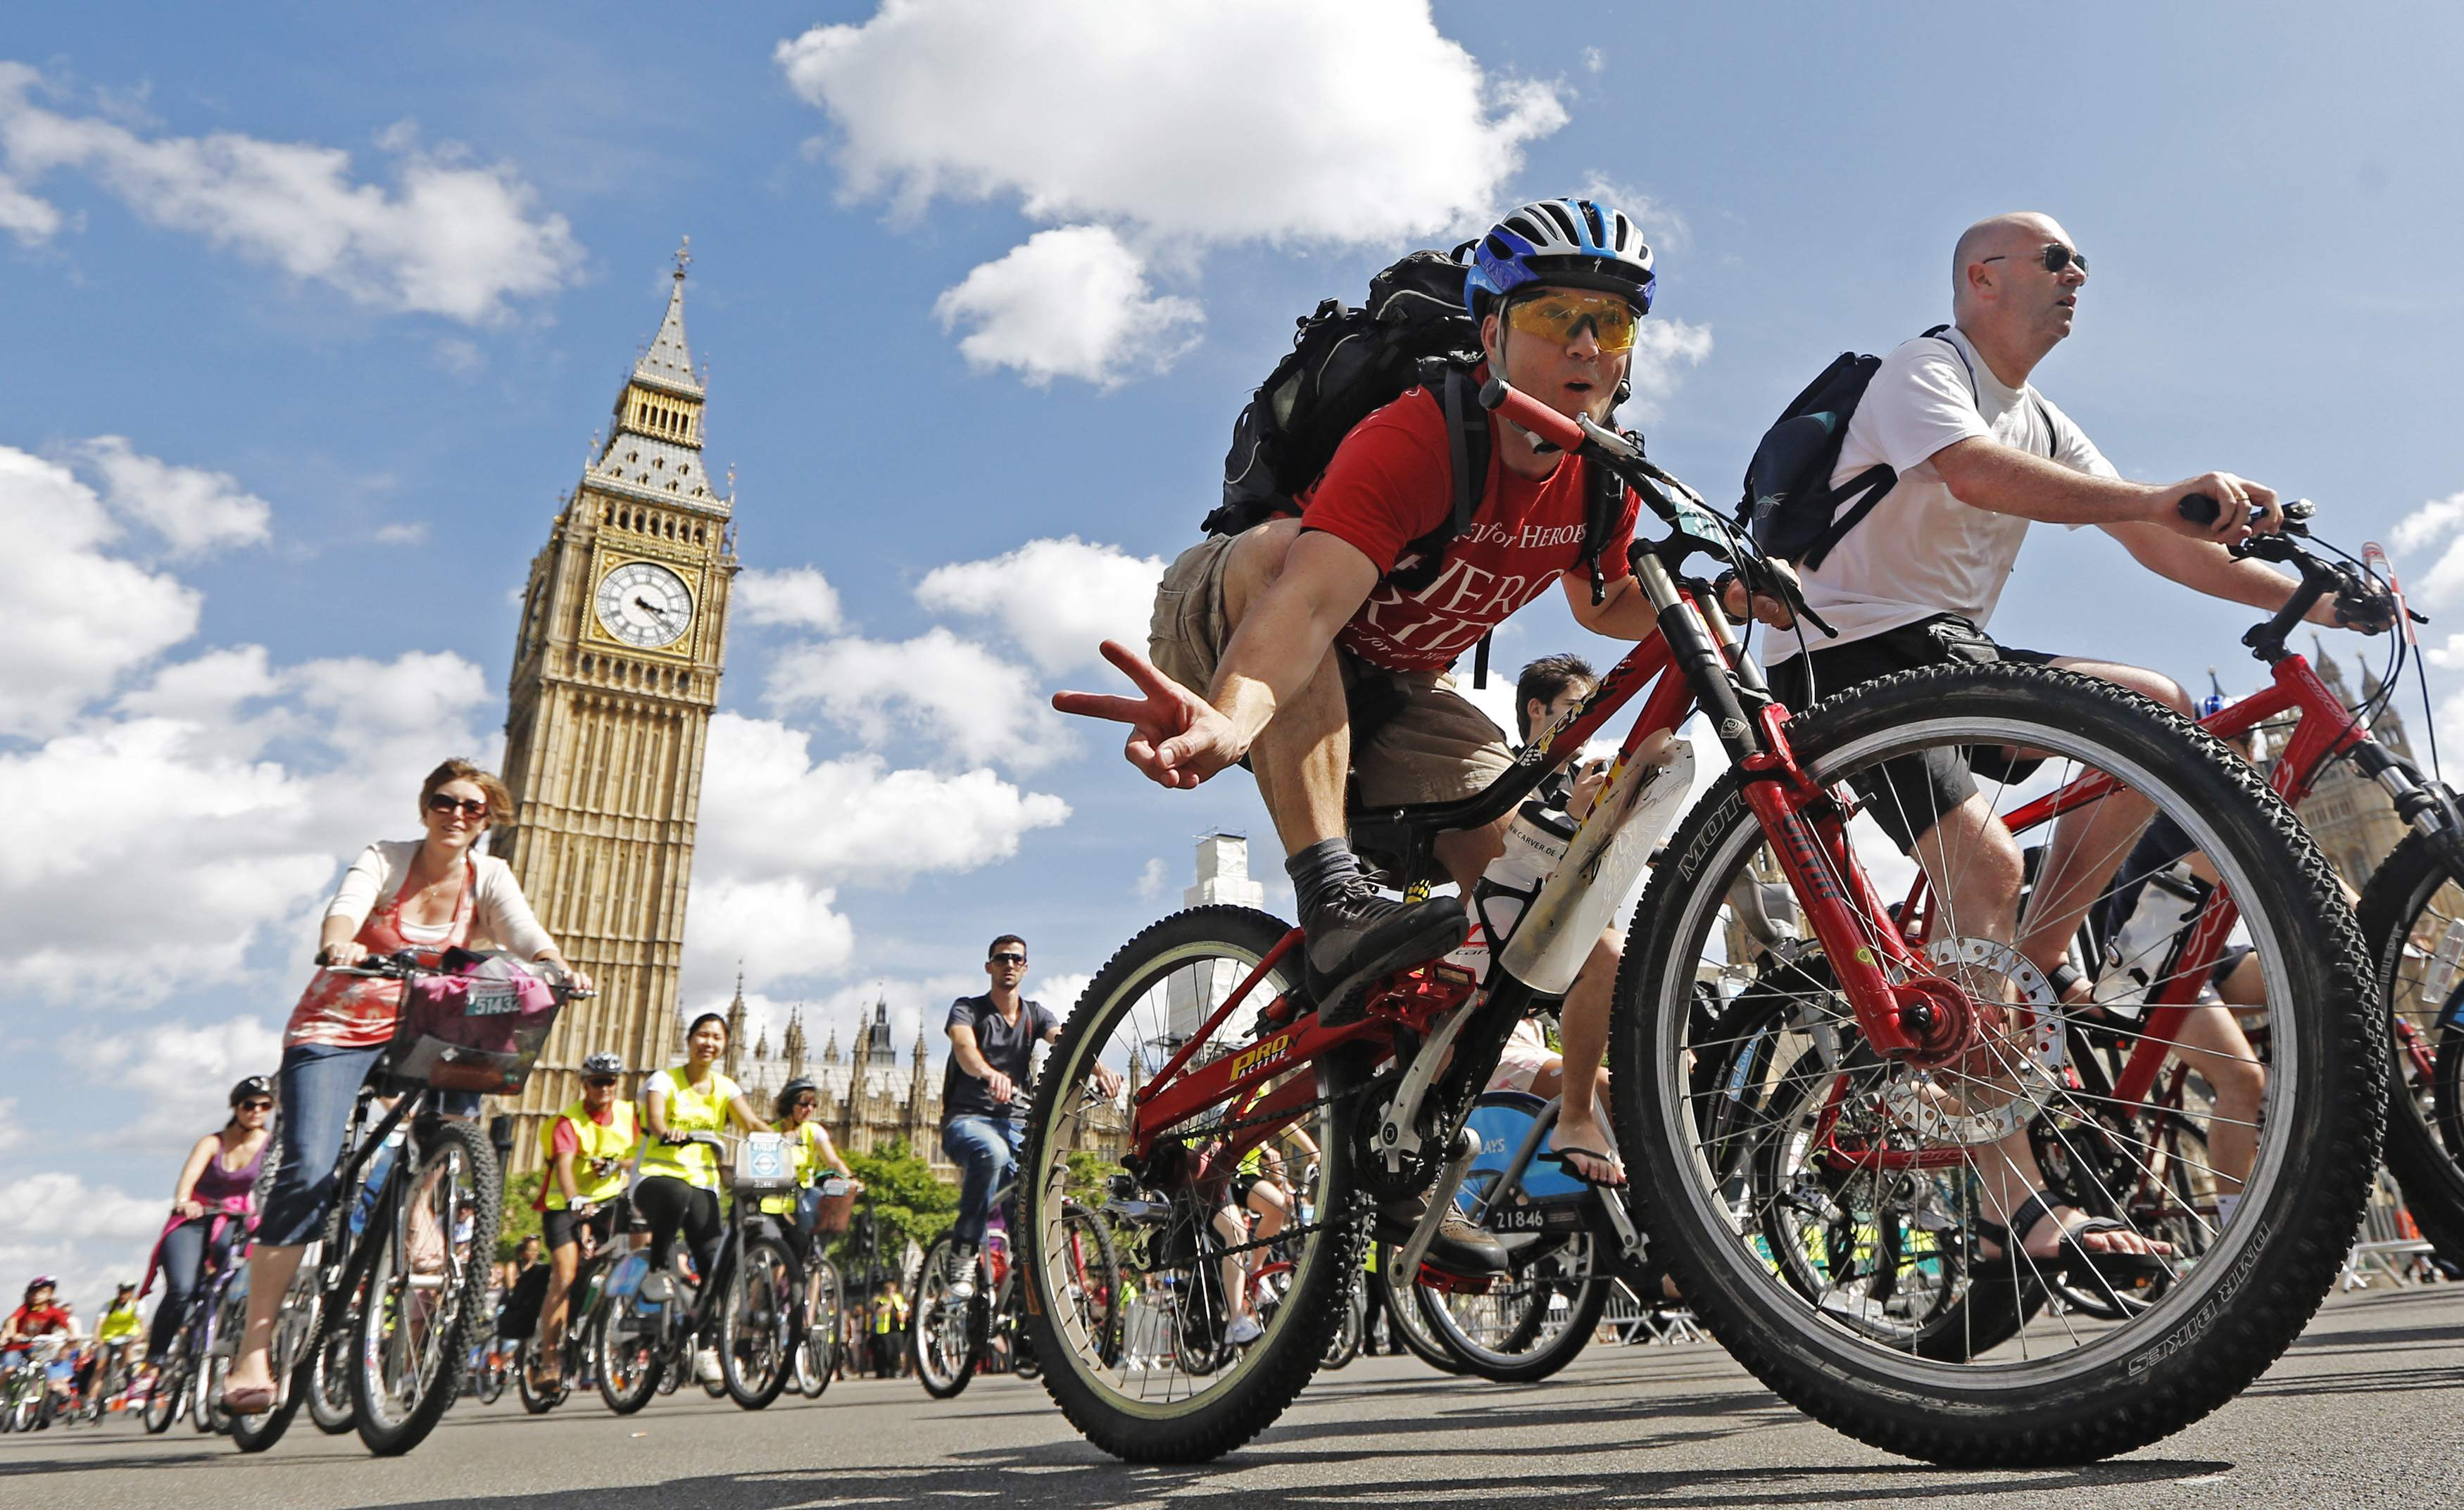 Cyclists of all ages ride past the Houses of Parliament during the Prudential RideLondon FreeCycle ride in central London